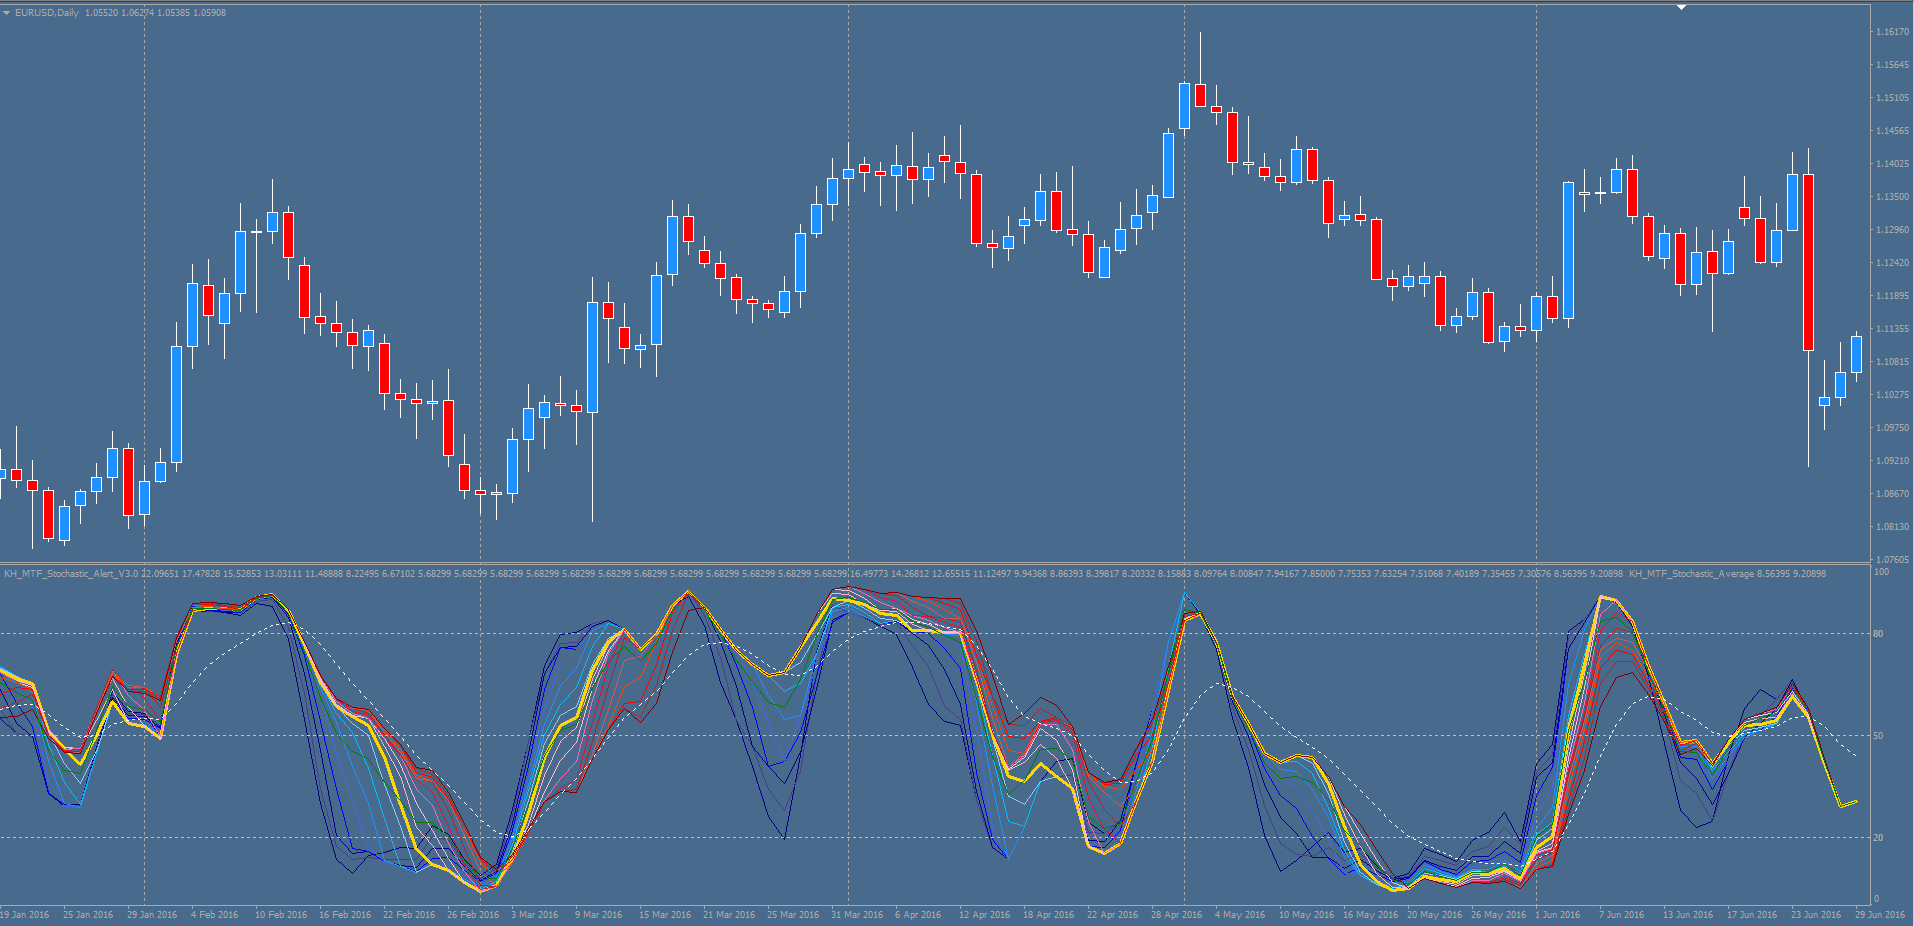 Stochastic forex wiki trading pview investments clothing